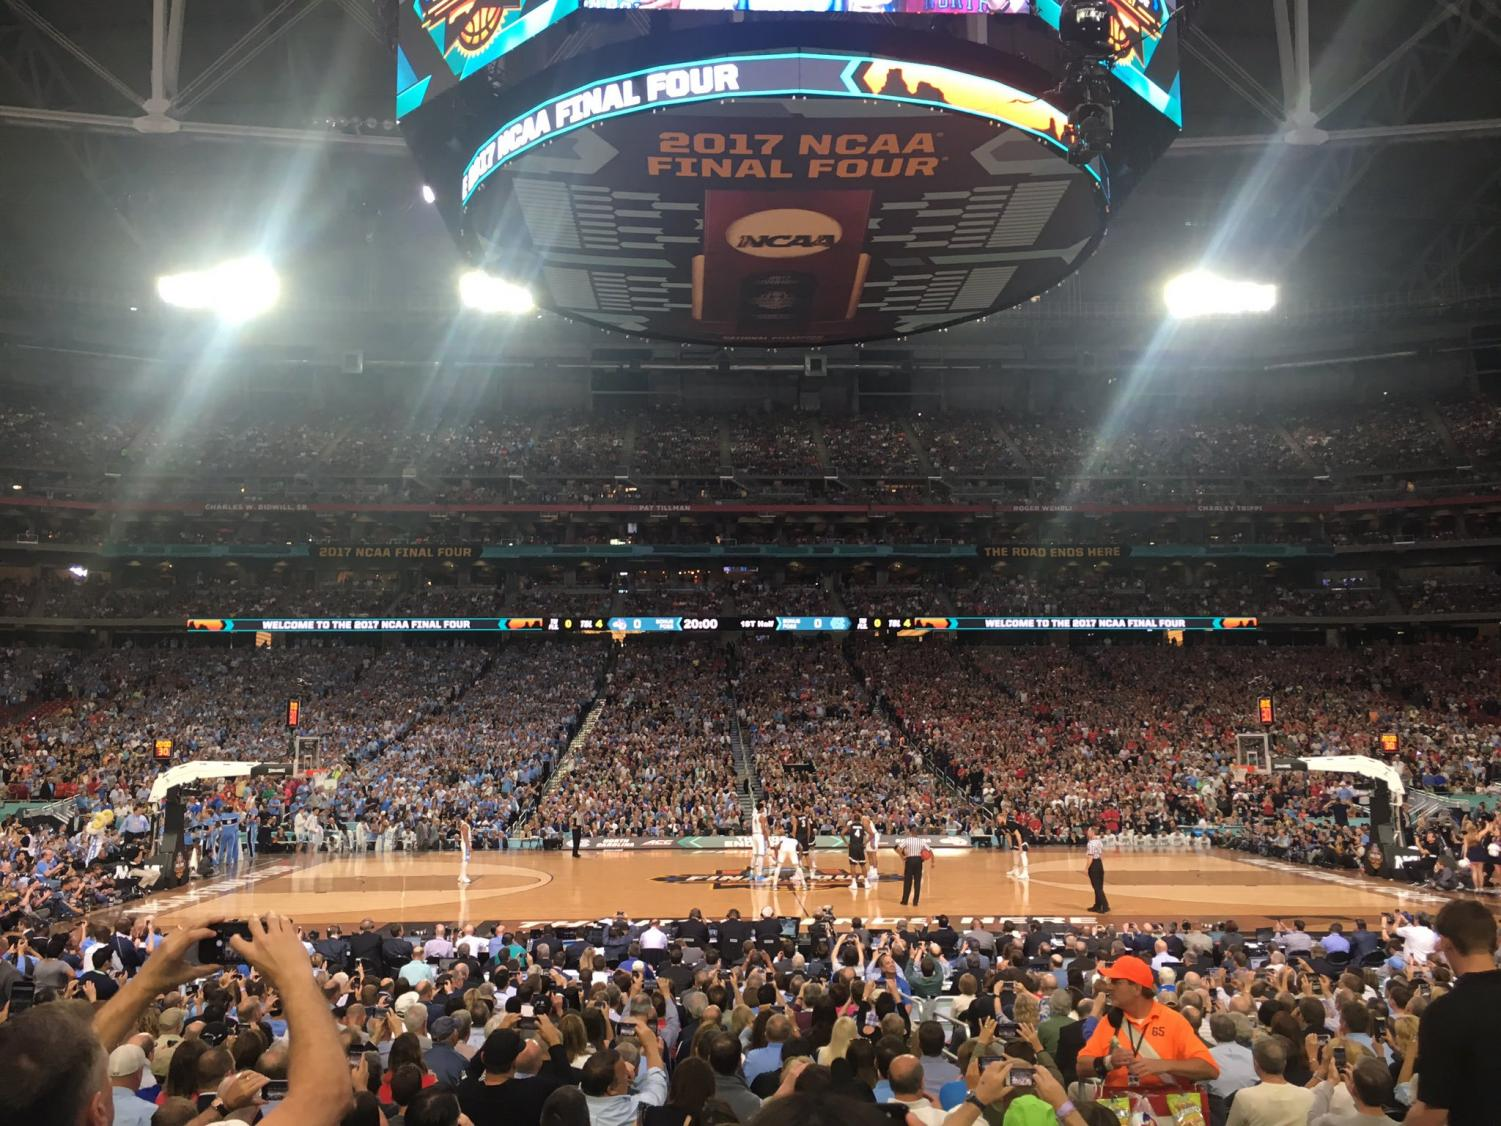 I attended the 2017 NCAA championship game between North Carolina and Gonzaga. The atmosphere was something I have never felt at a sport's venue; it was ecstatic.